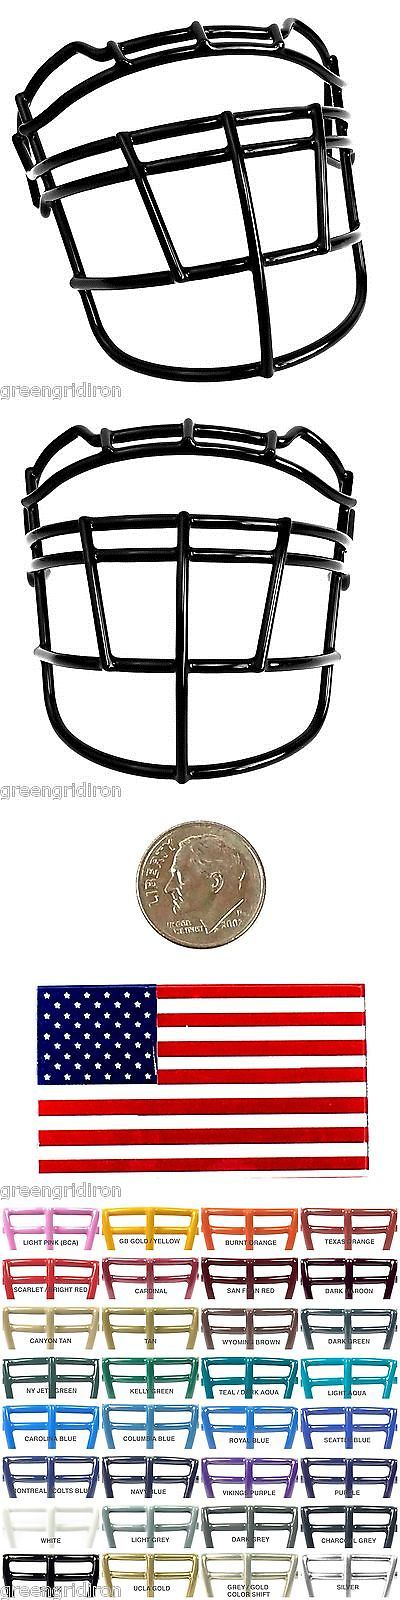 Helmets and Hats 21222: Schutt Vengeance V-Rjop-Dw-Trad Football Facemask - 30+ Colors Available BUY IT NOW ONLY: $40.0